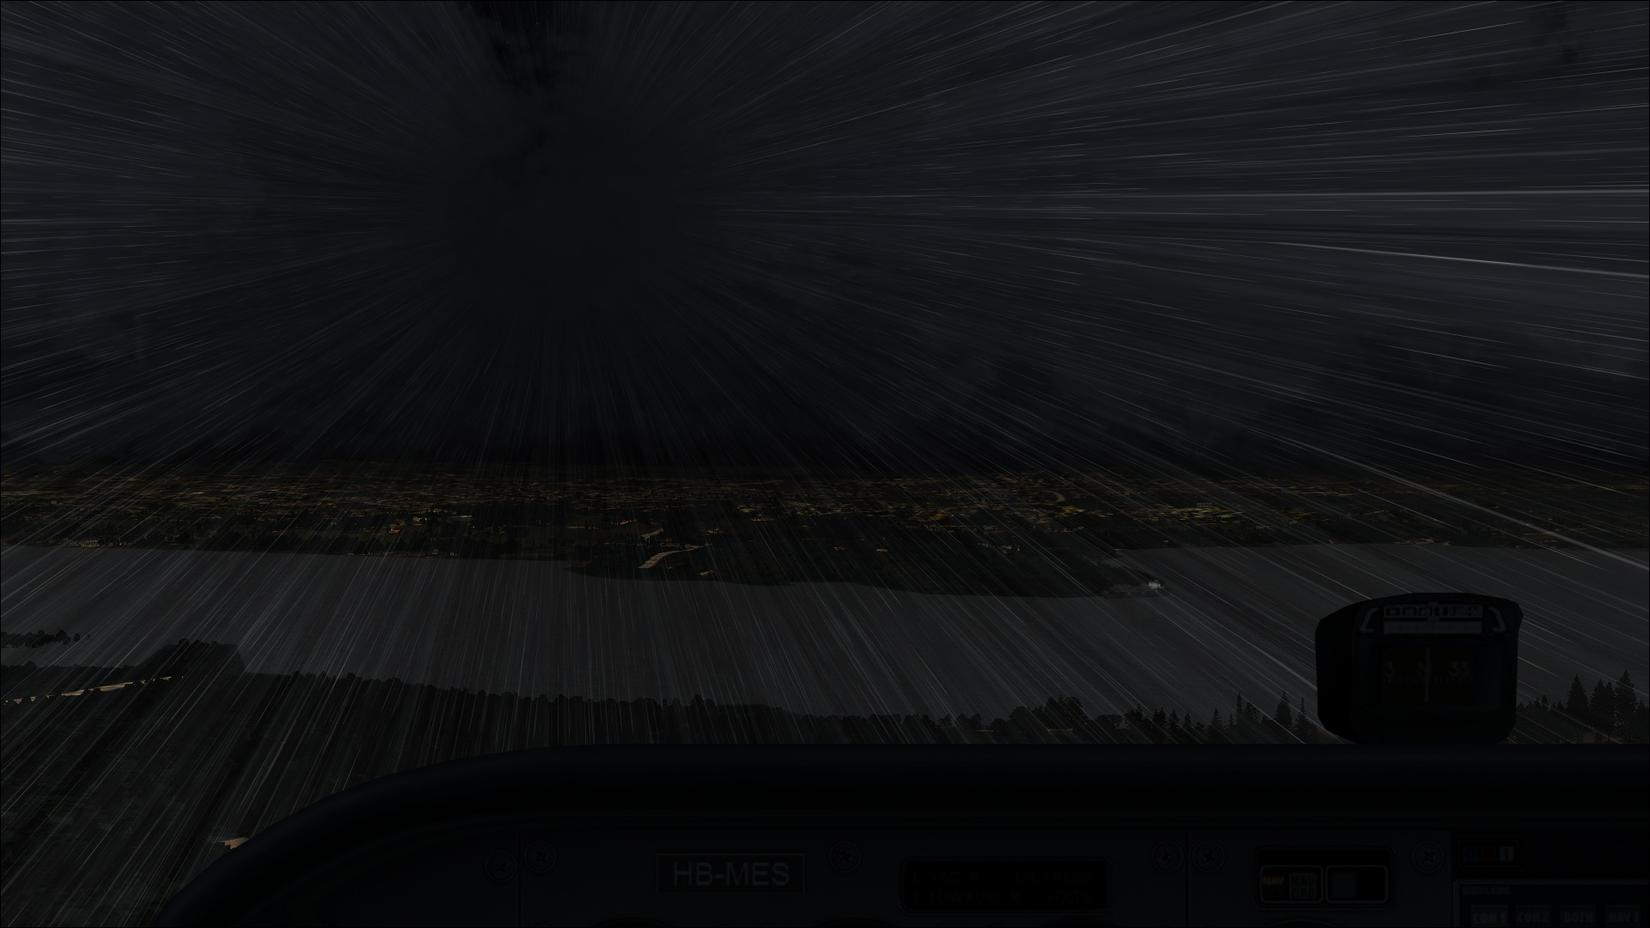 objects disappear at night FSX - SimHQ Forums